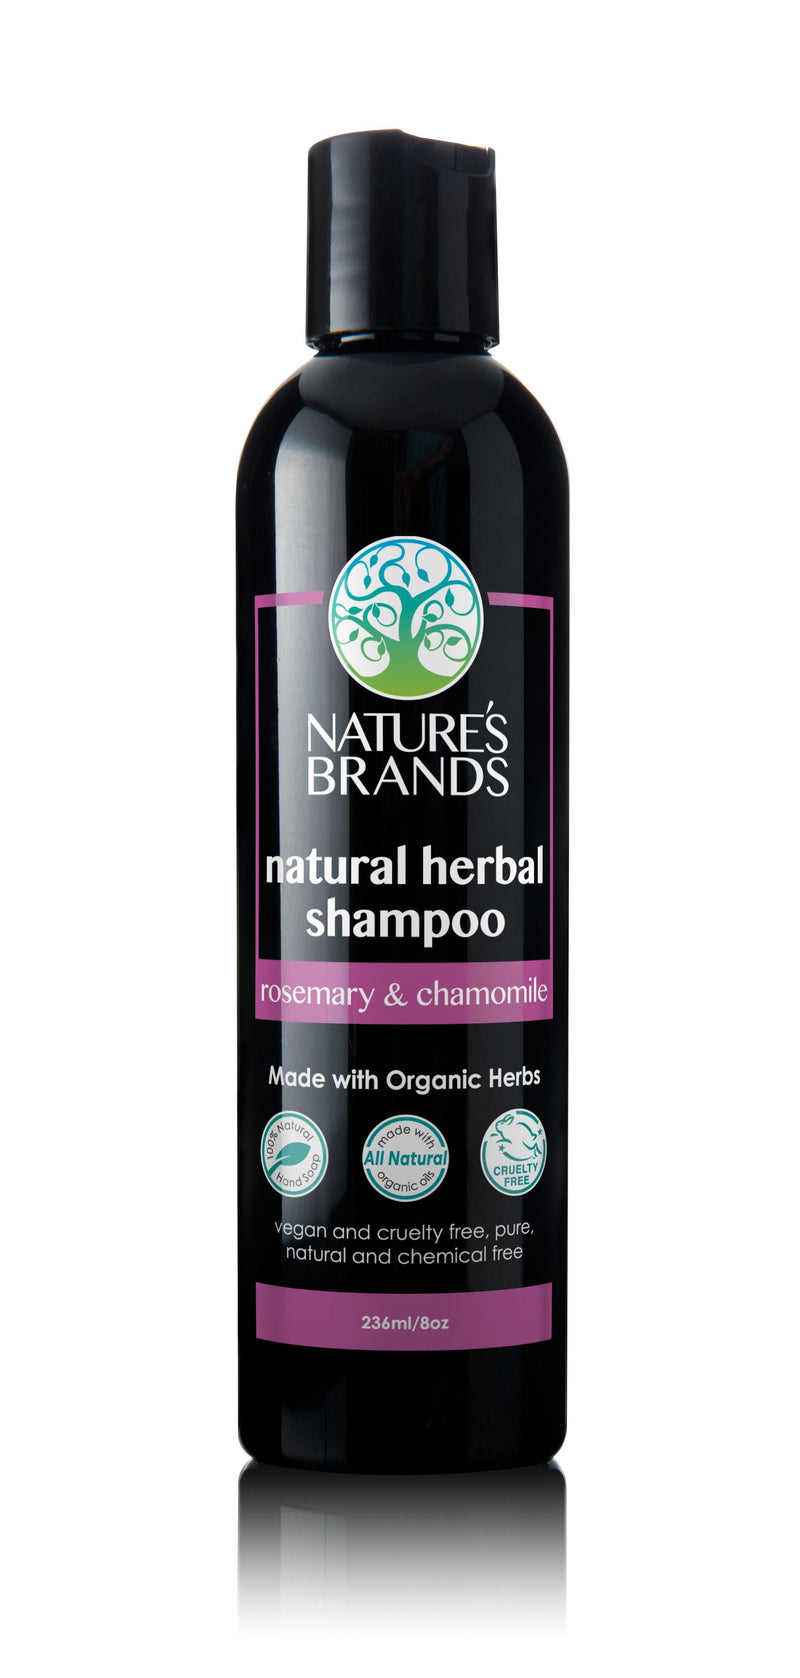 Herbal Choice Mari Natural Shampoo, Rosemary & Chamomile; Made with Organic - Herbal Choice Mari Natural Shampoo, Rosemary & Chamomile; Made with Organic - 8floz